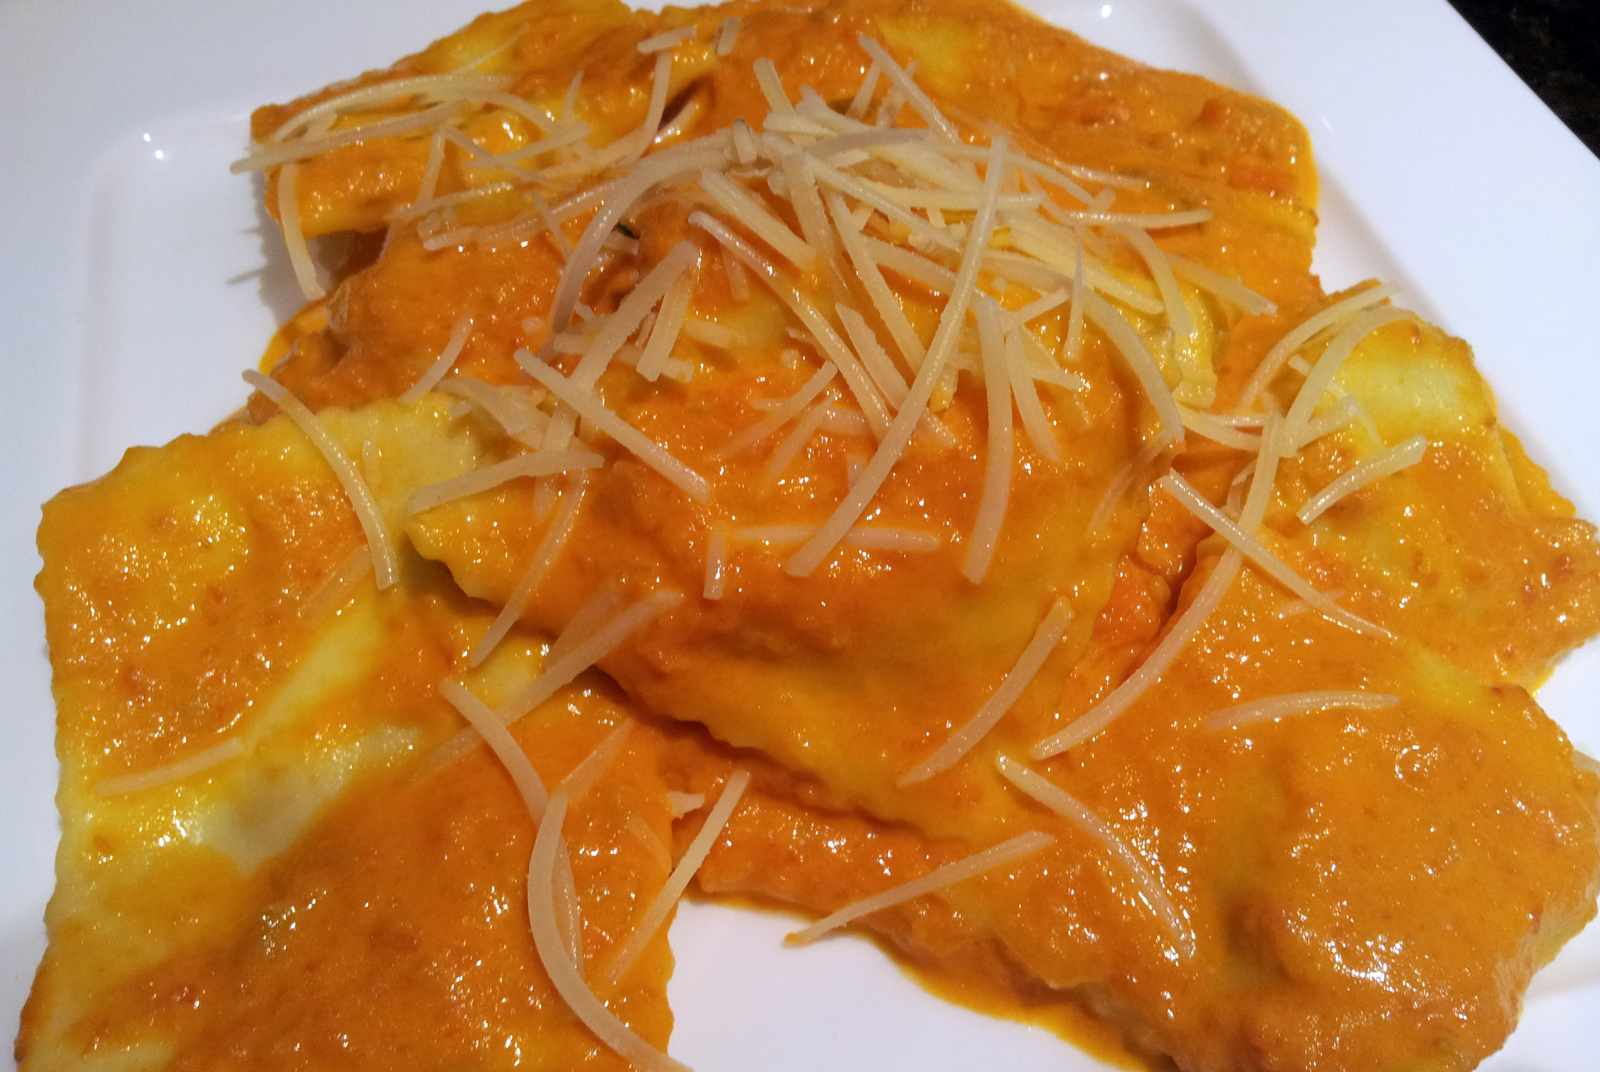 Tomato and Cream Sauce Over Stuffed Ravioli